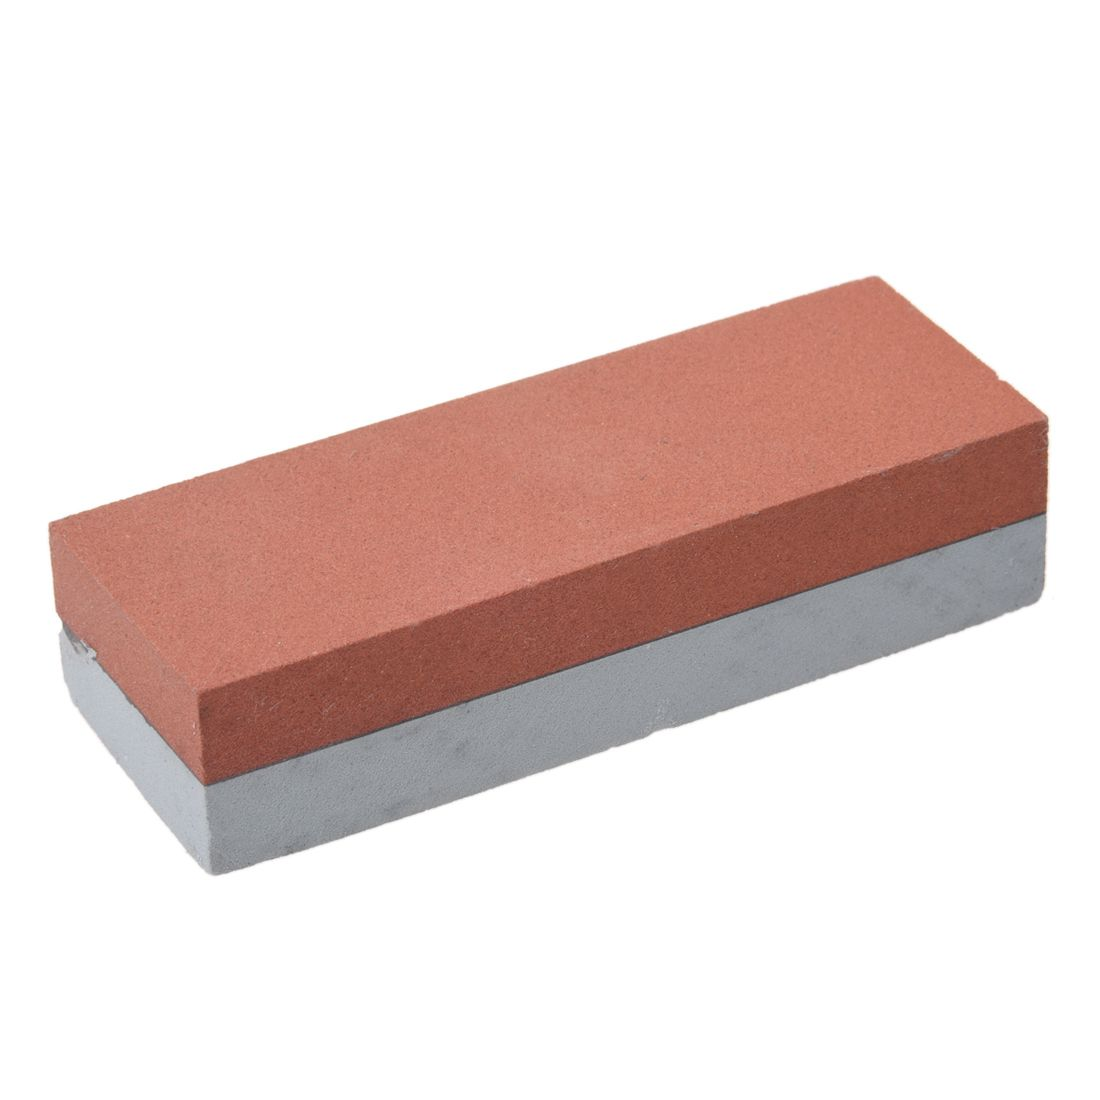 Combination Grit Double <font><b>Sided</b></font> Knife Honing Sharpener Sharpening Stone Whetstone image